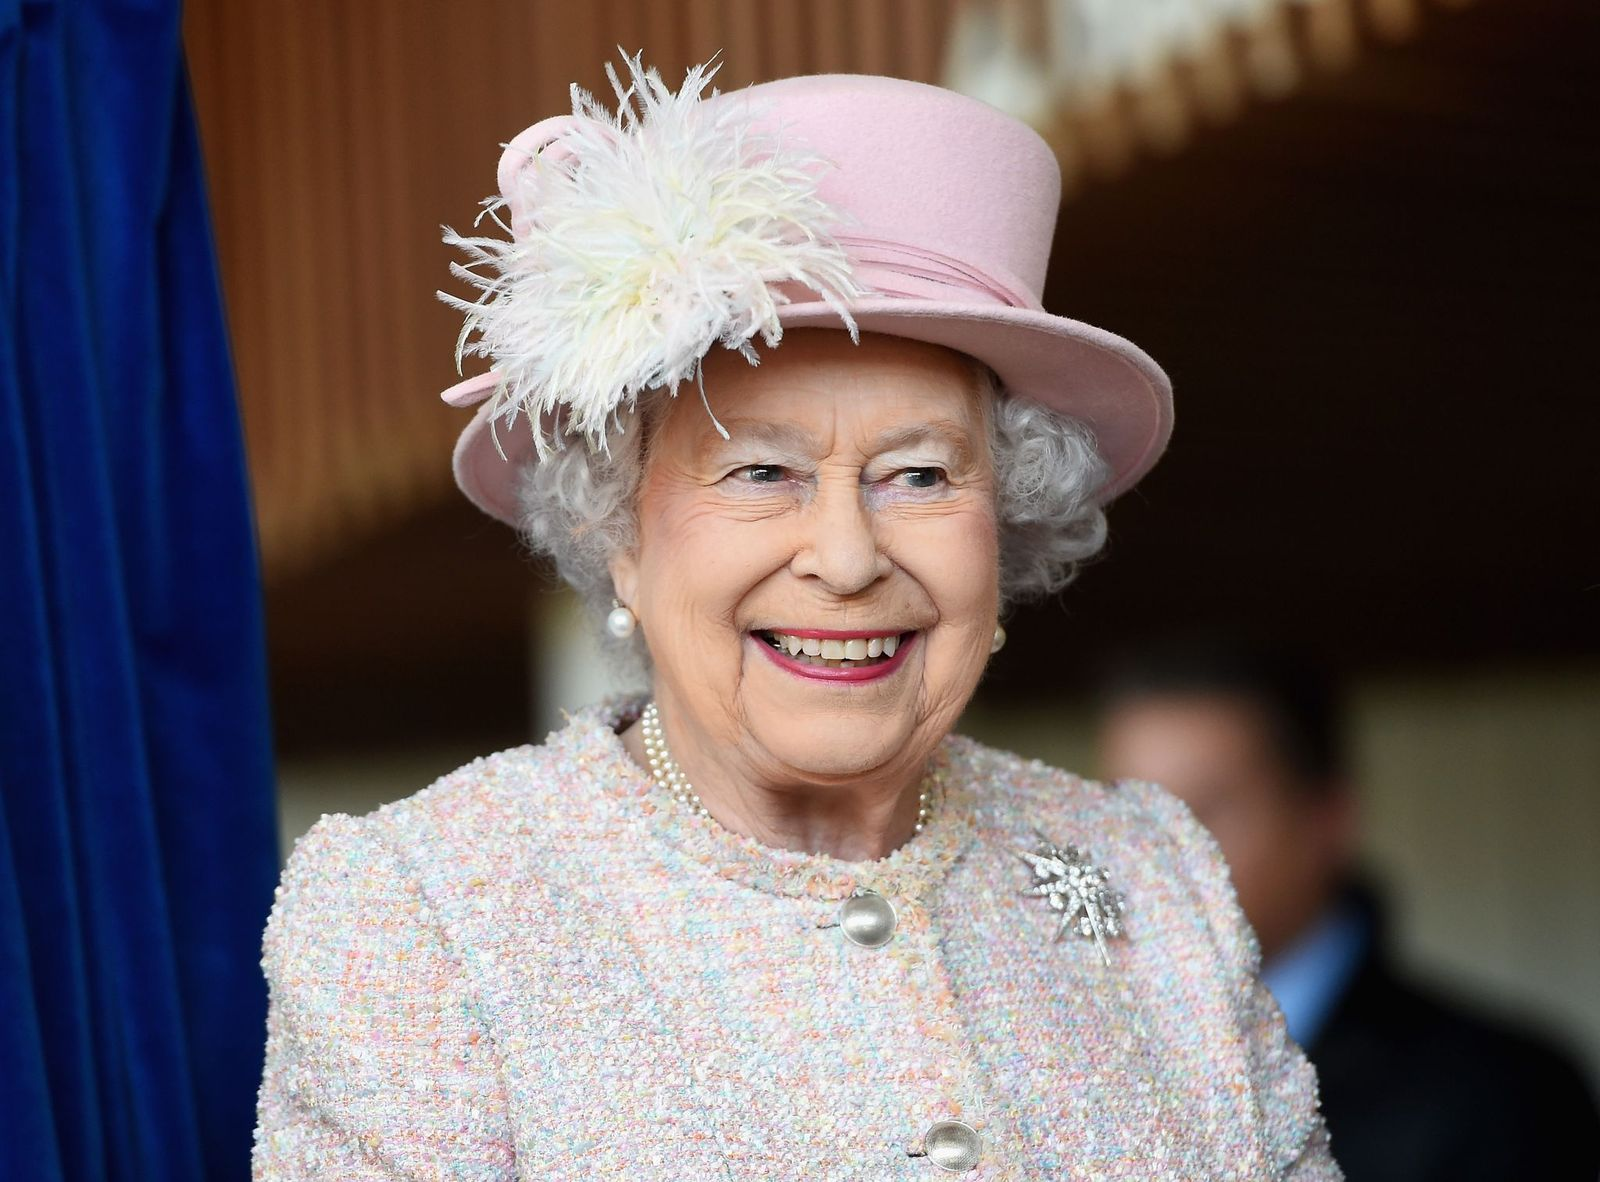 Queen Elizabeth IIat the Chichester Theatre while visiting West Sussex on November 30, 2017, in Chichester, United Kingdom | Photo:Stuart C. Wilson/Getty Images